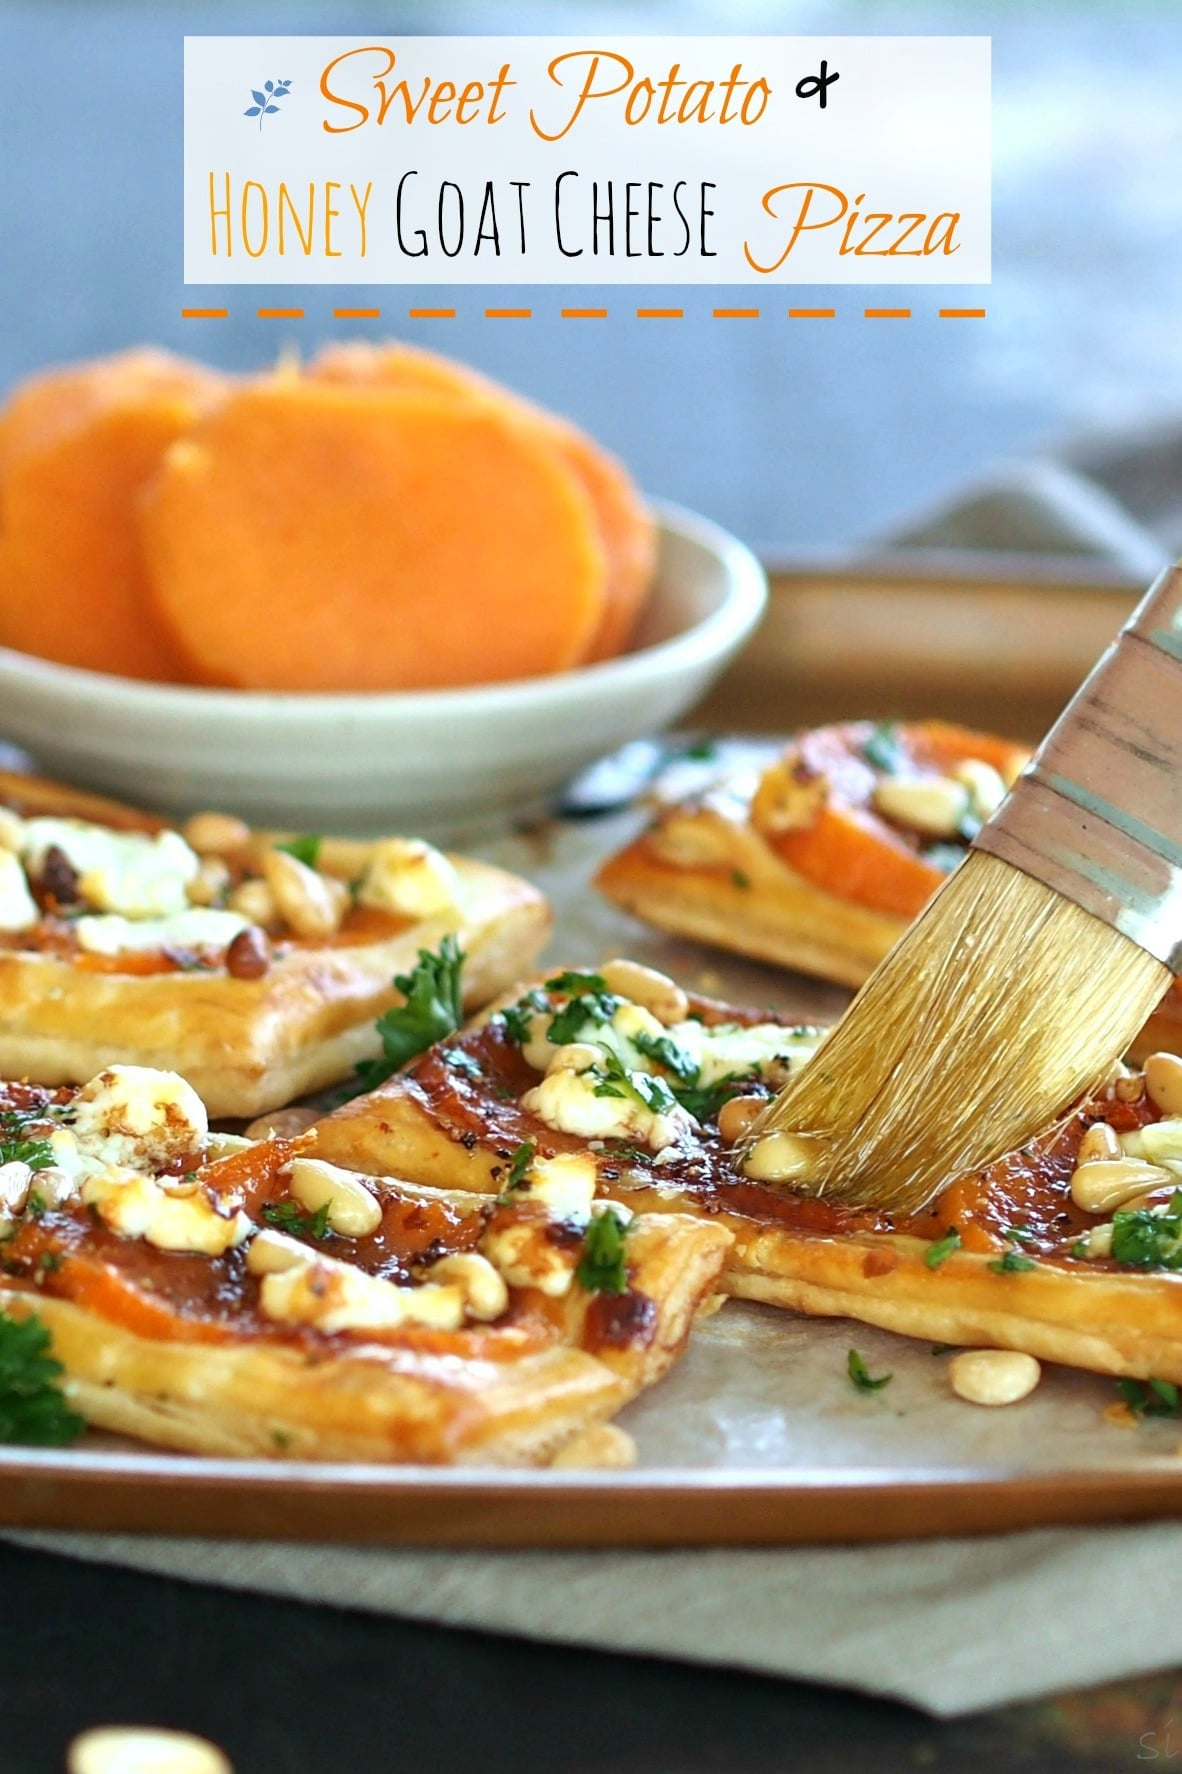 Sweet Potato & Honey Goat Cheese Pizza - Simply Sated